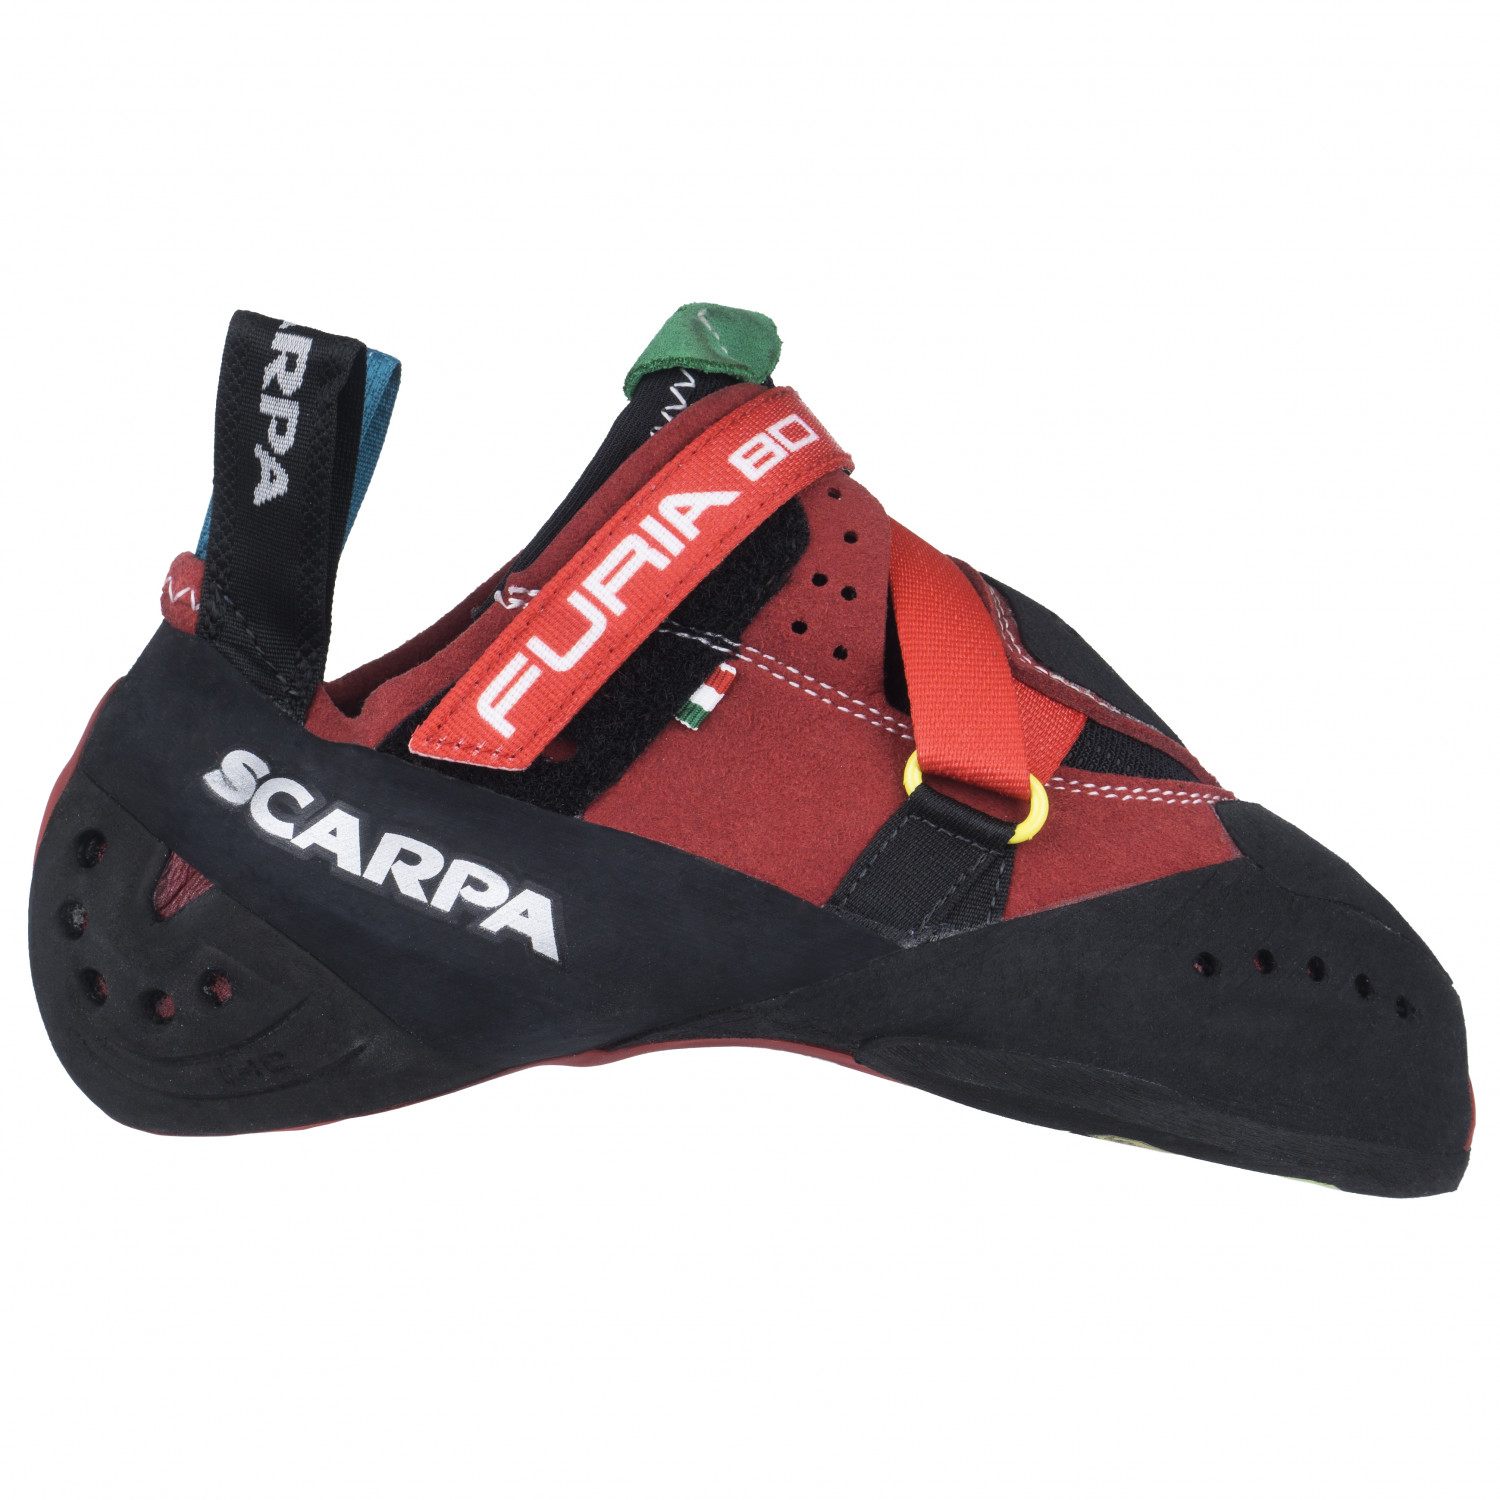 Scarpa Furia 80 Limited Edition Climbing shoes